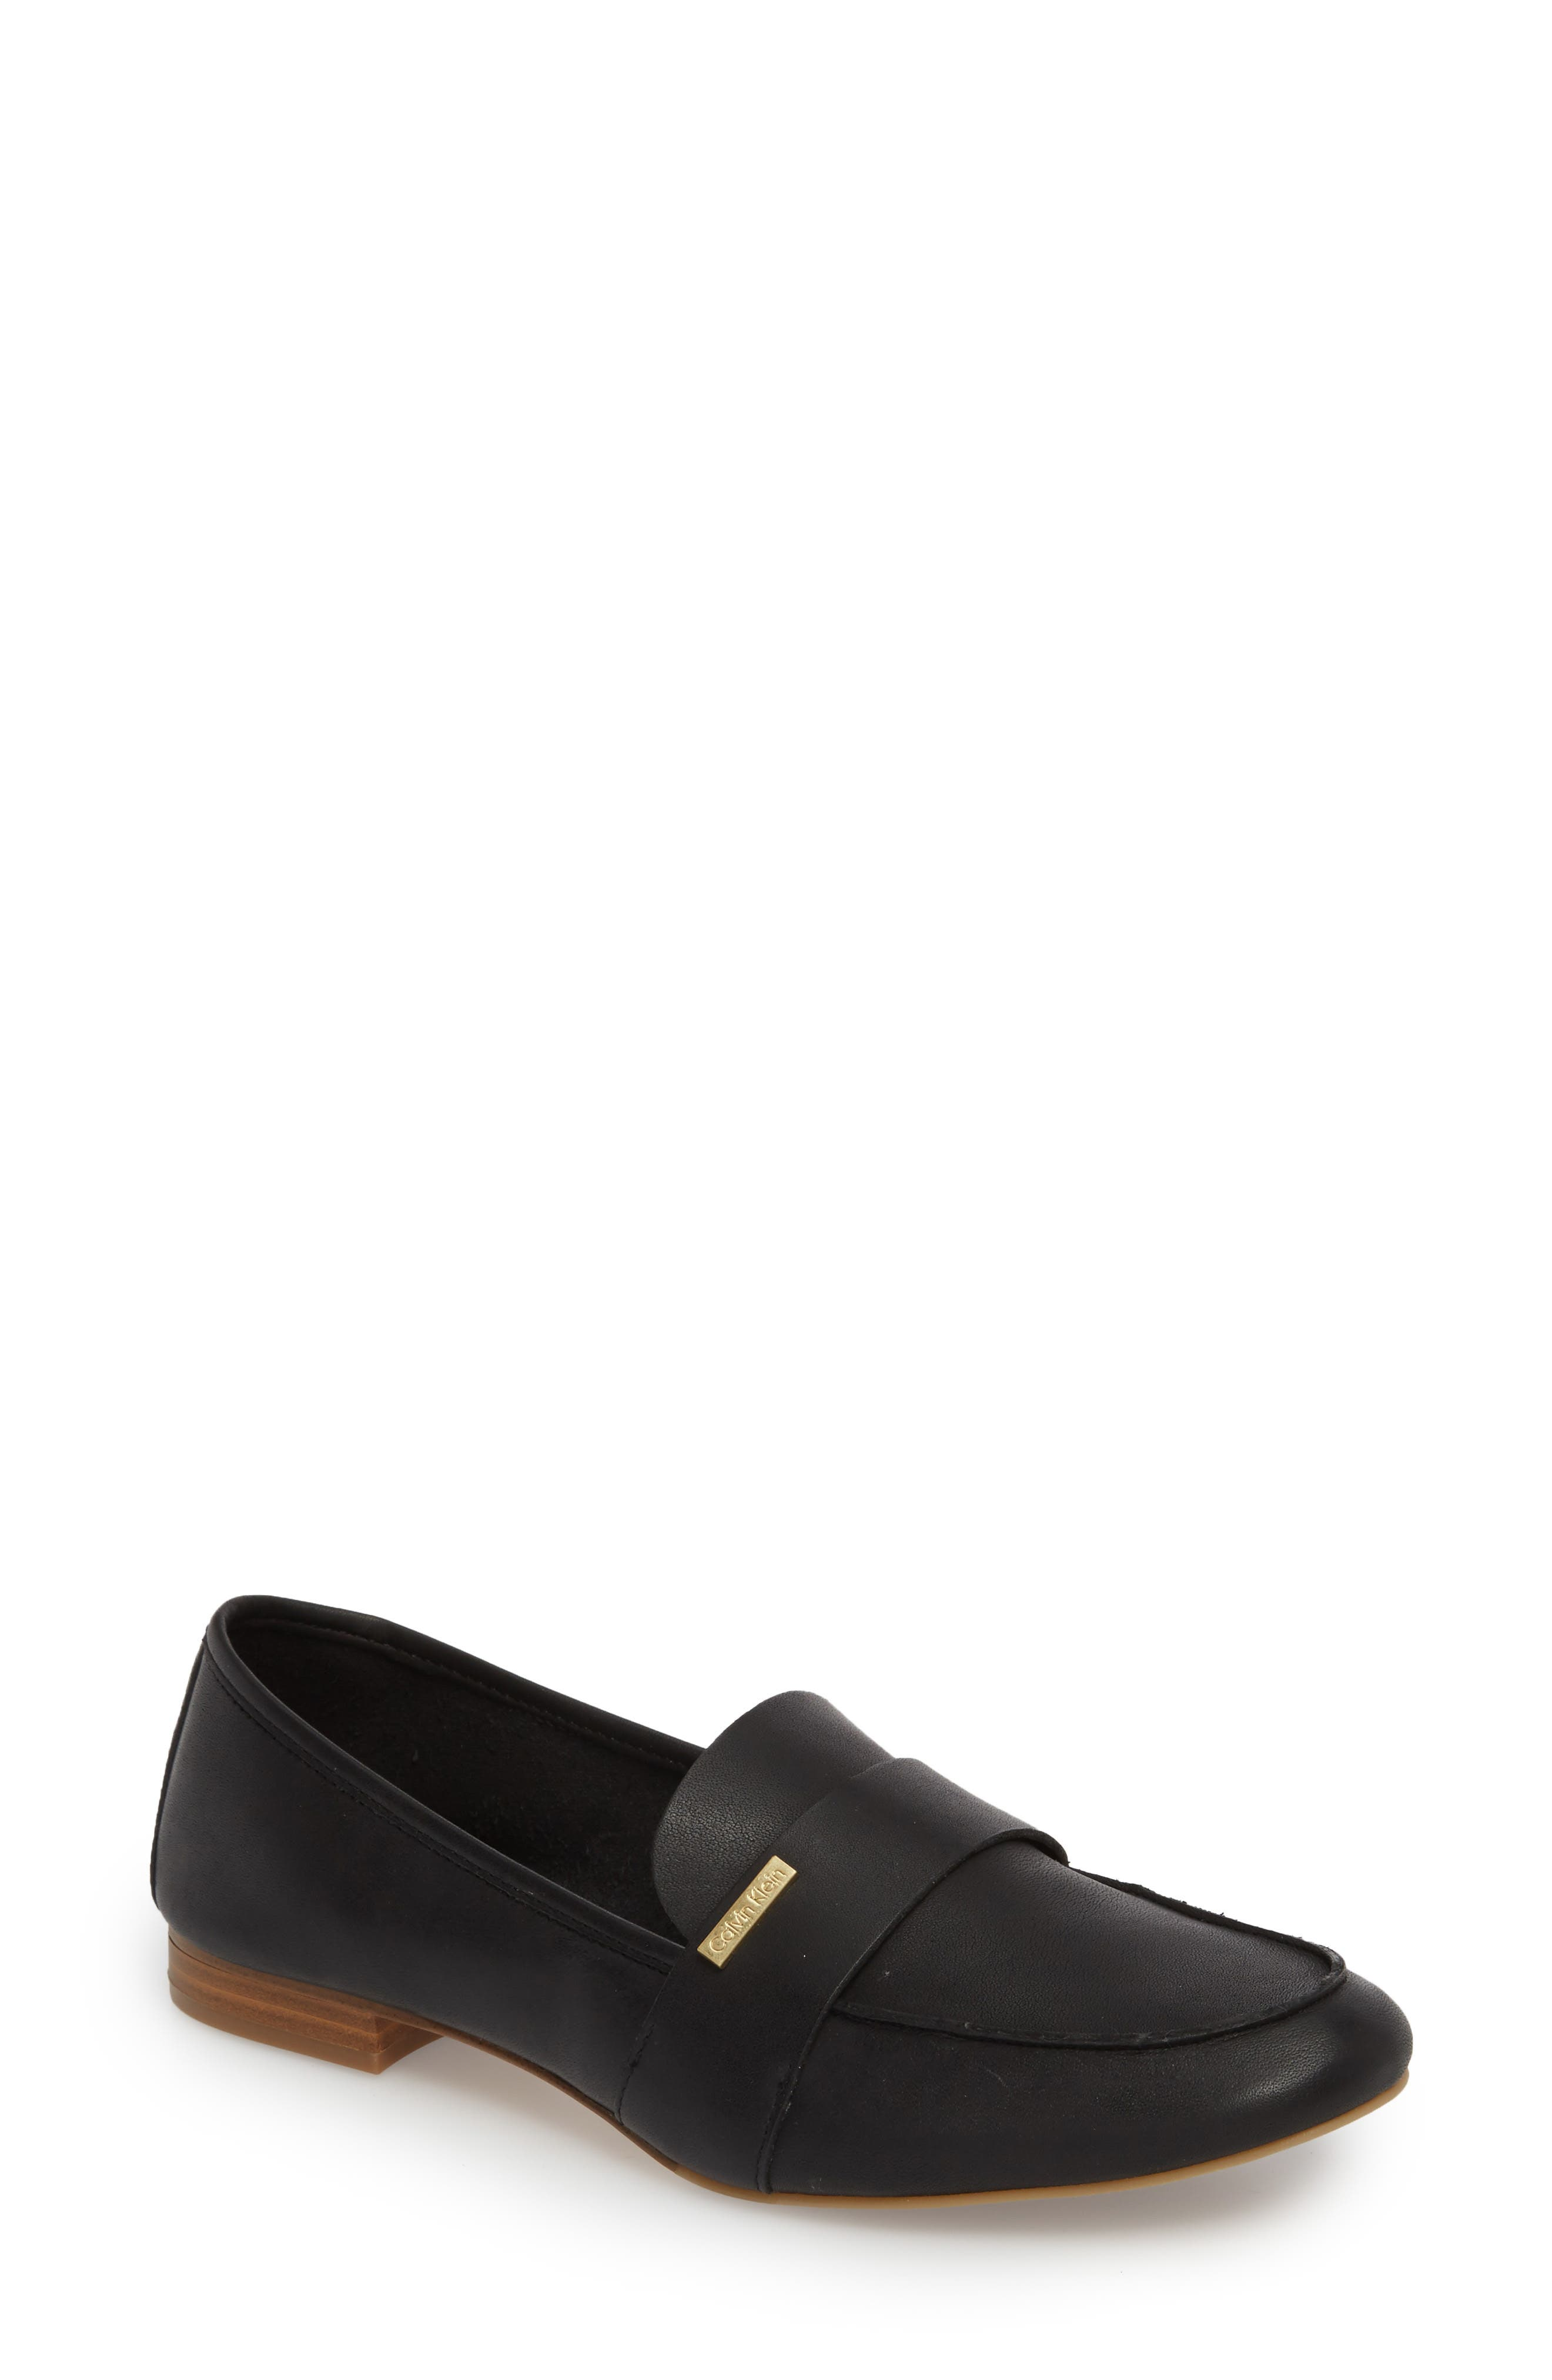 Cemmie Loafer,                             Main thumbnail 1, color,                             BLACK LEATHER